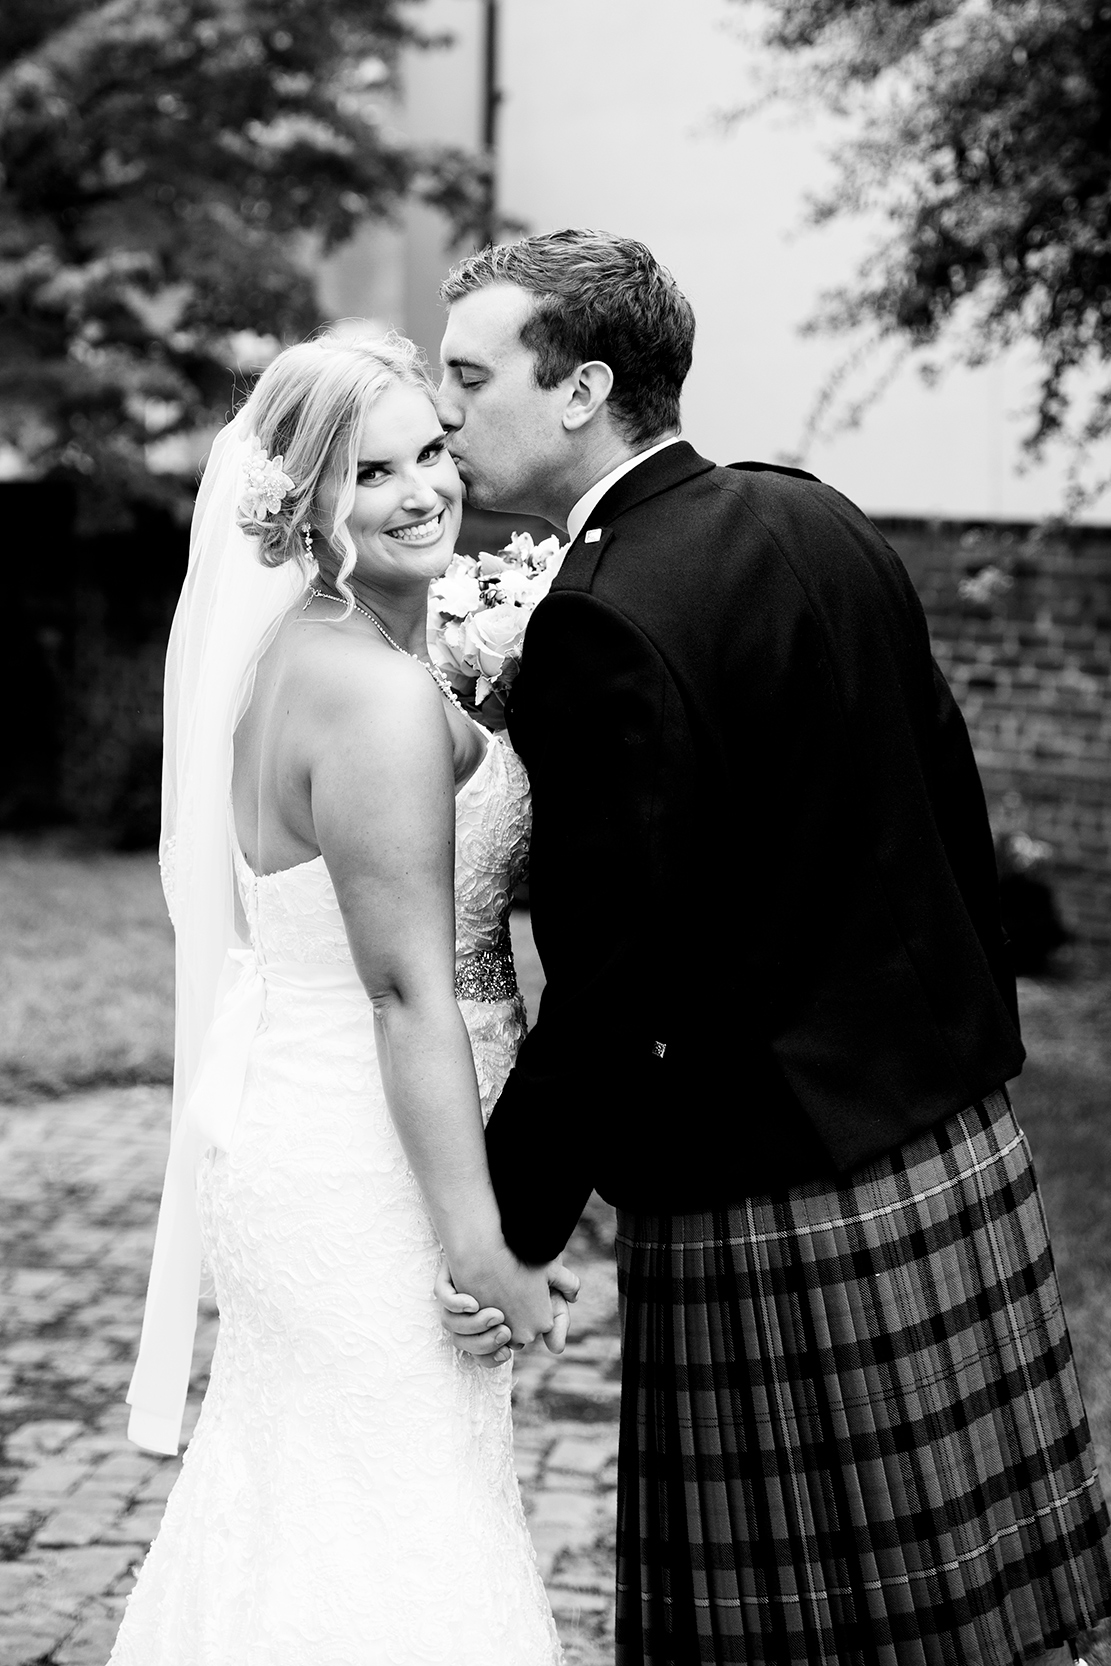 Wedding Preview  Ashton  Craig - Image Property of www.j-dphoto.com